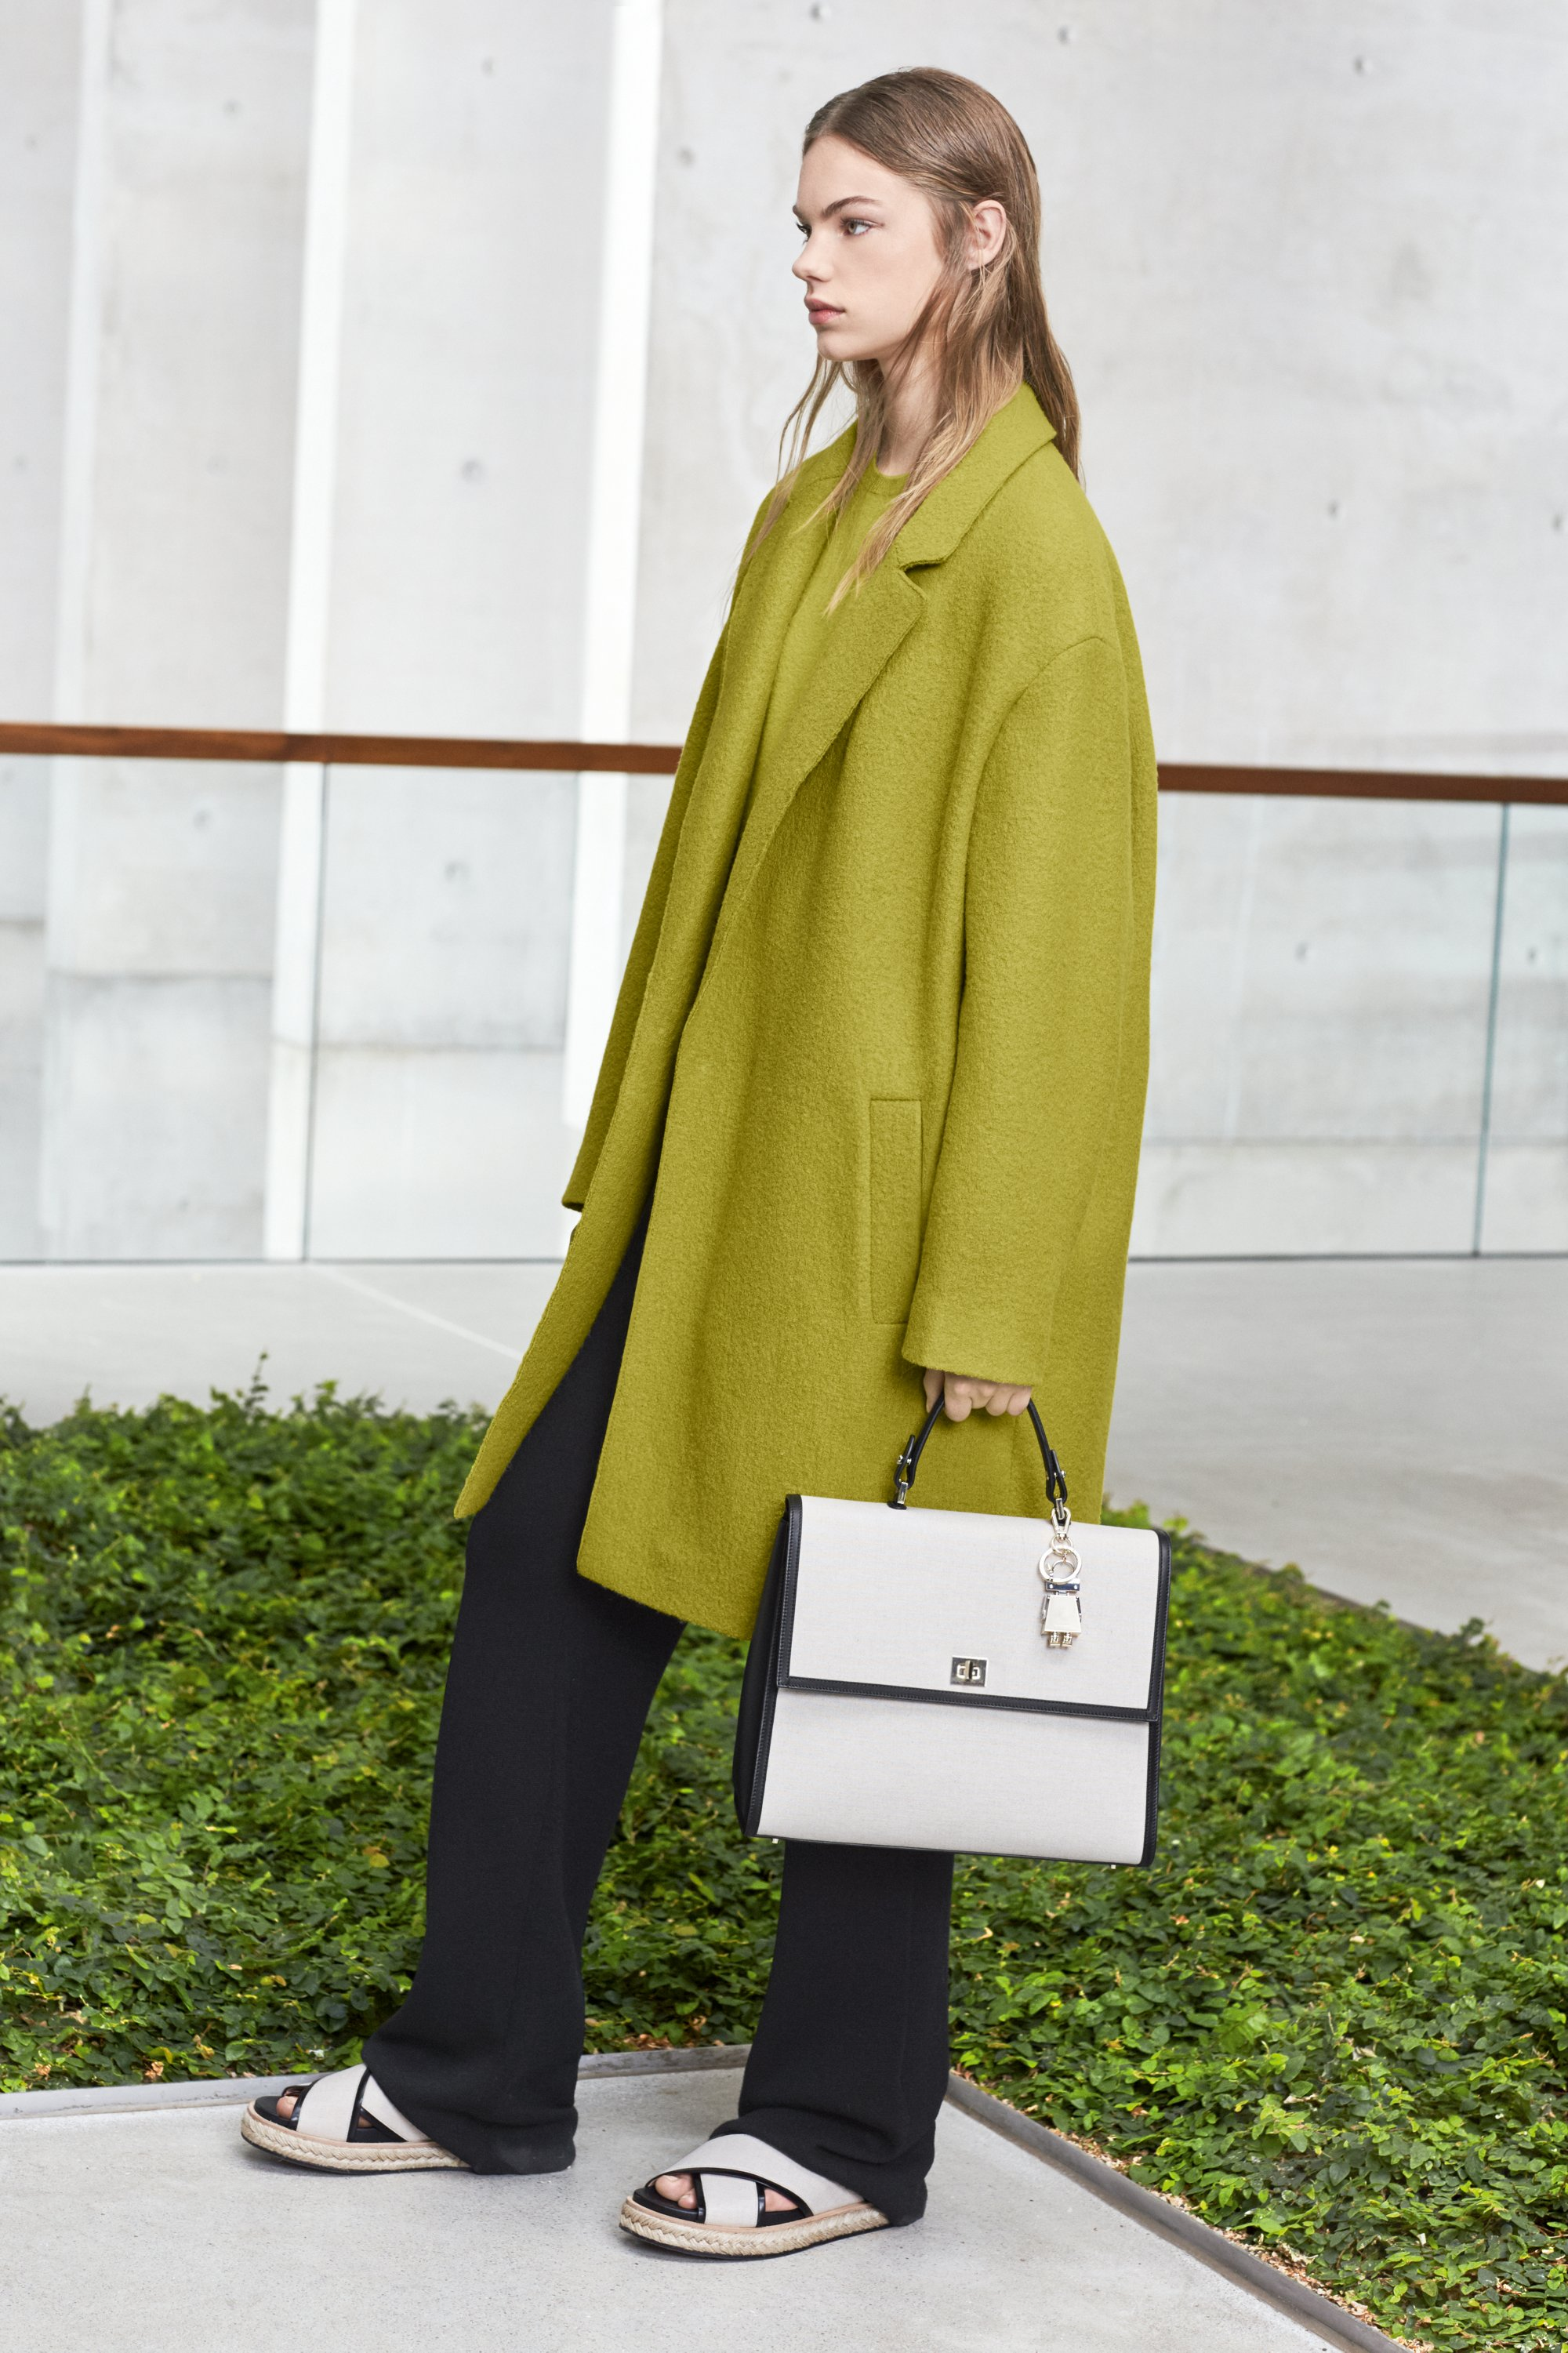 Green coat by BOSS Womenswear